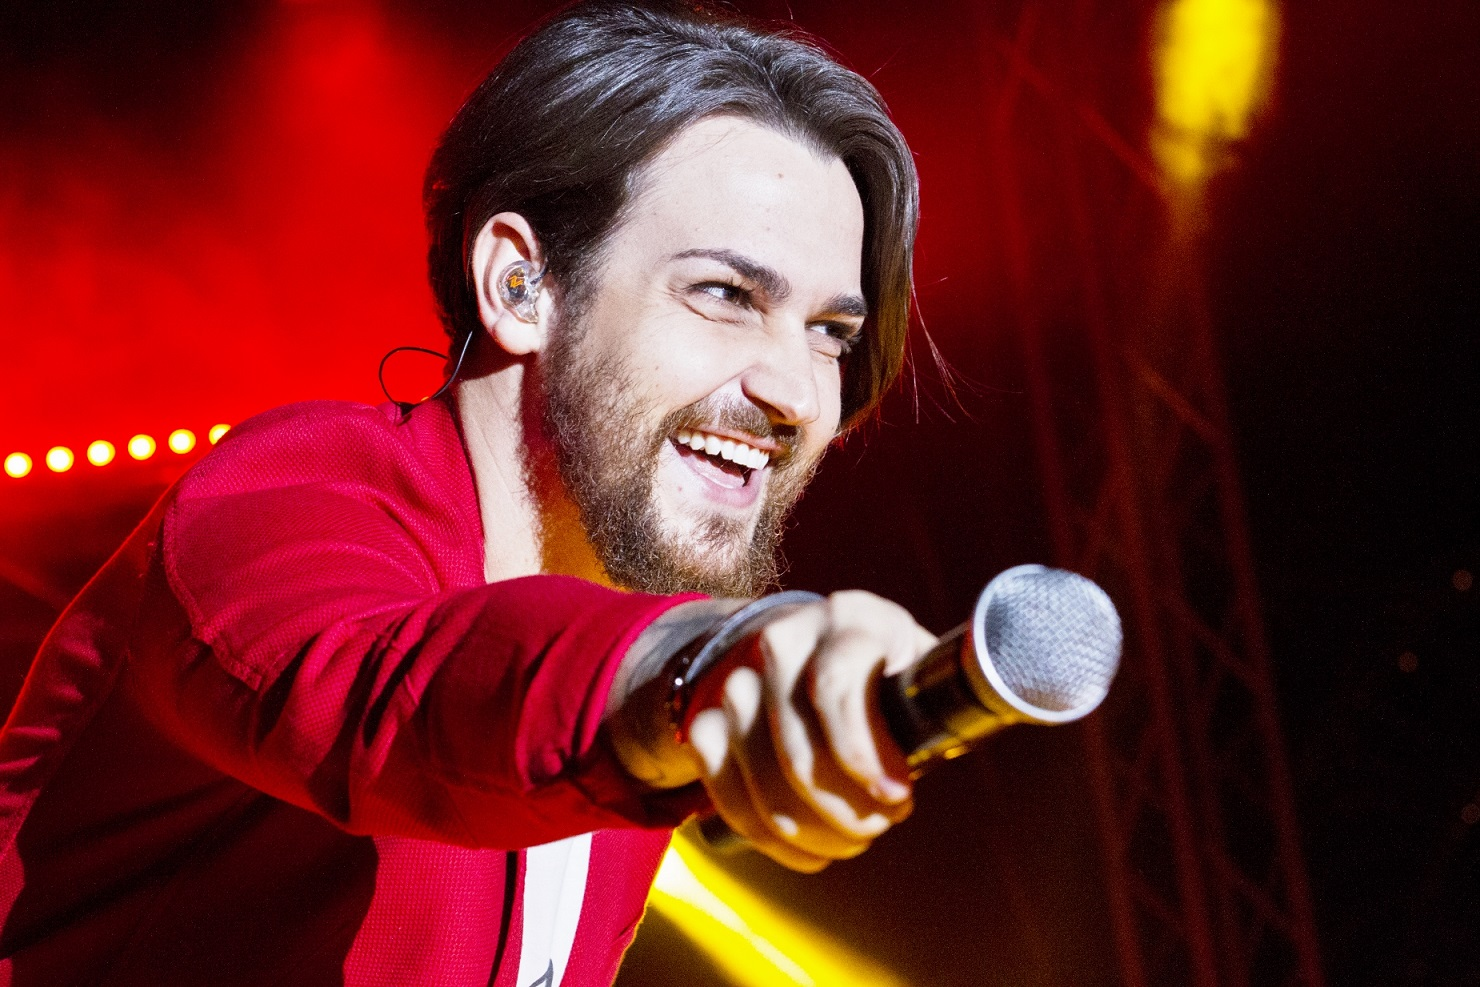 VALERIO SCANU CHRISTMAS SONGS